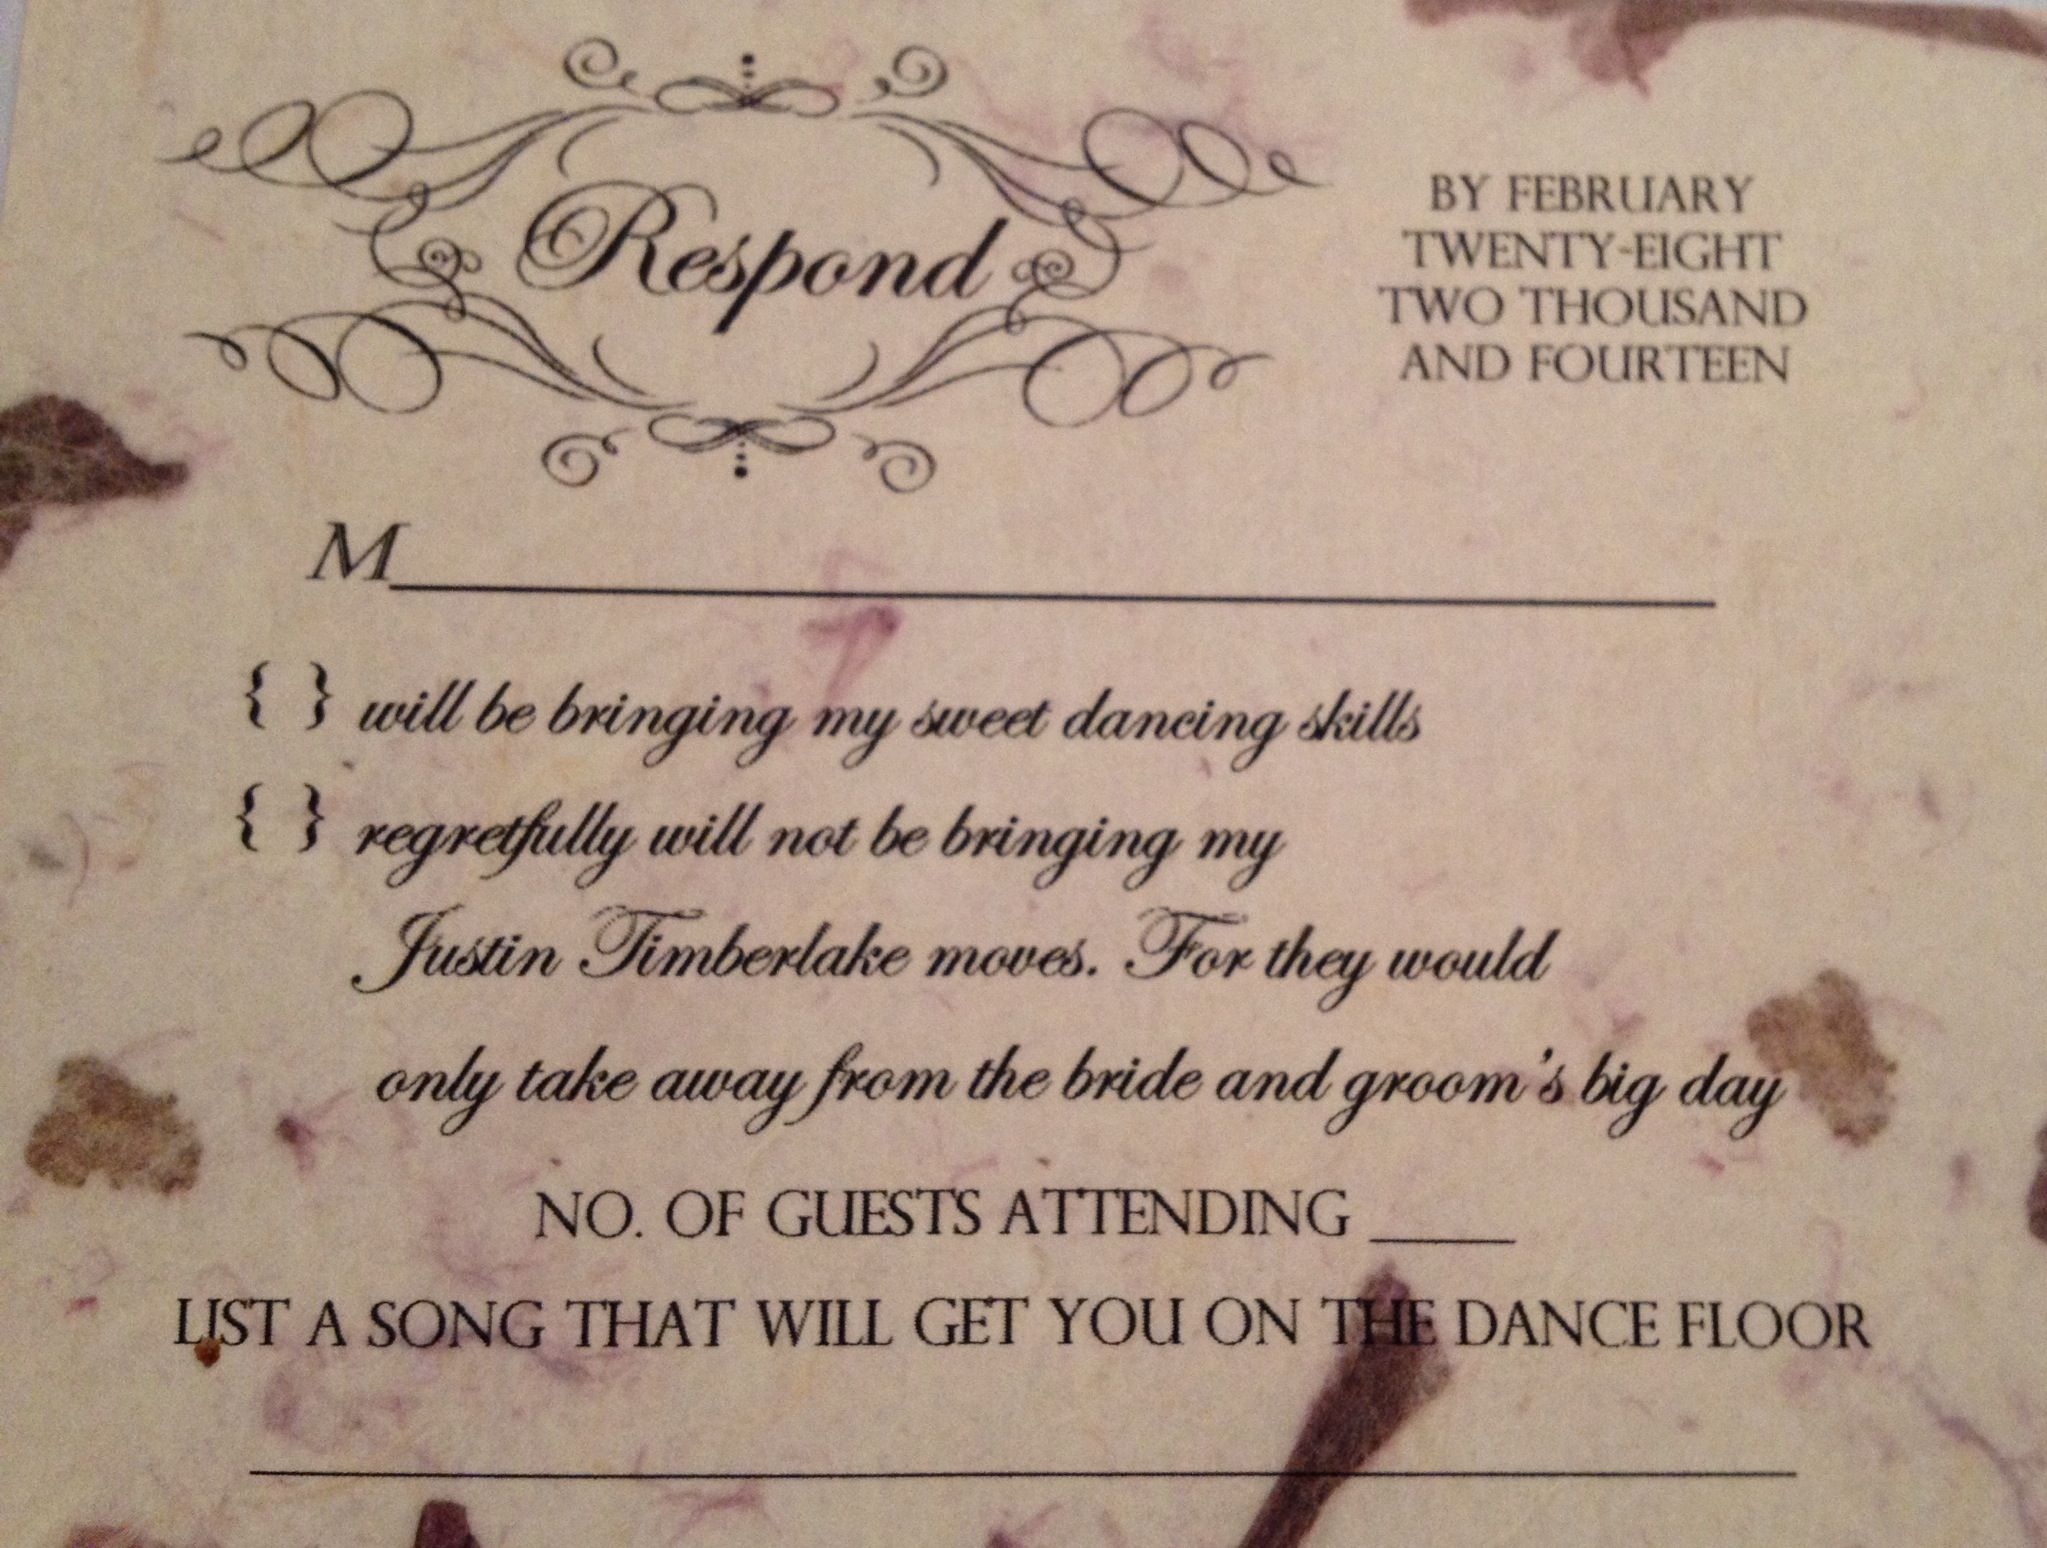 Funny Wedding RSVP Card Took A Week To Think Of Something Creative The Response